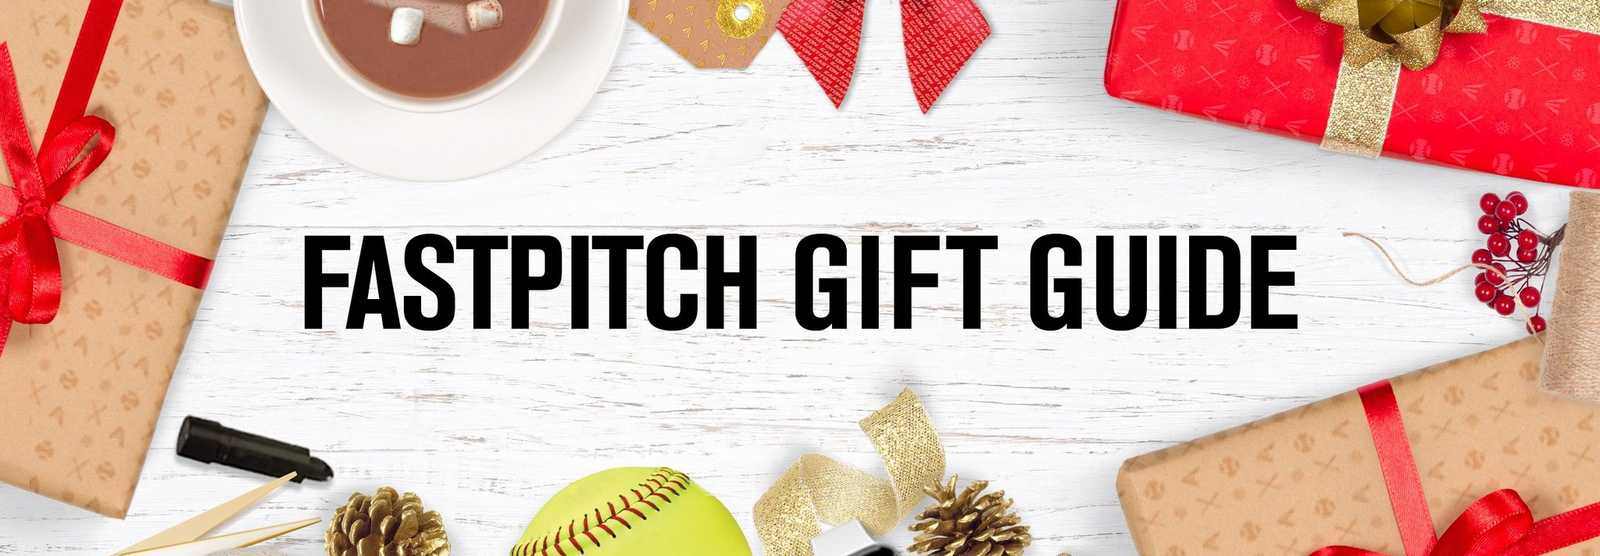 2019-faspitch-holiday-gift-guide